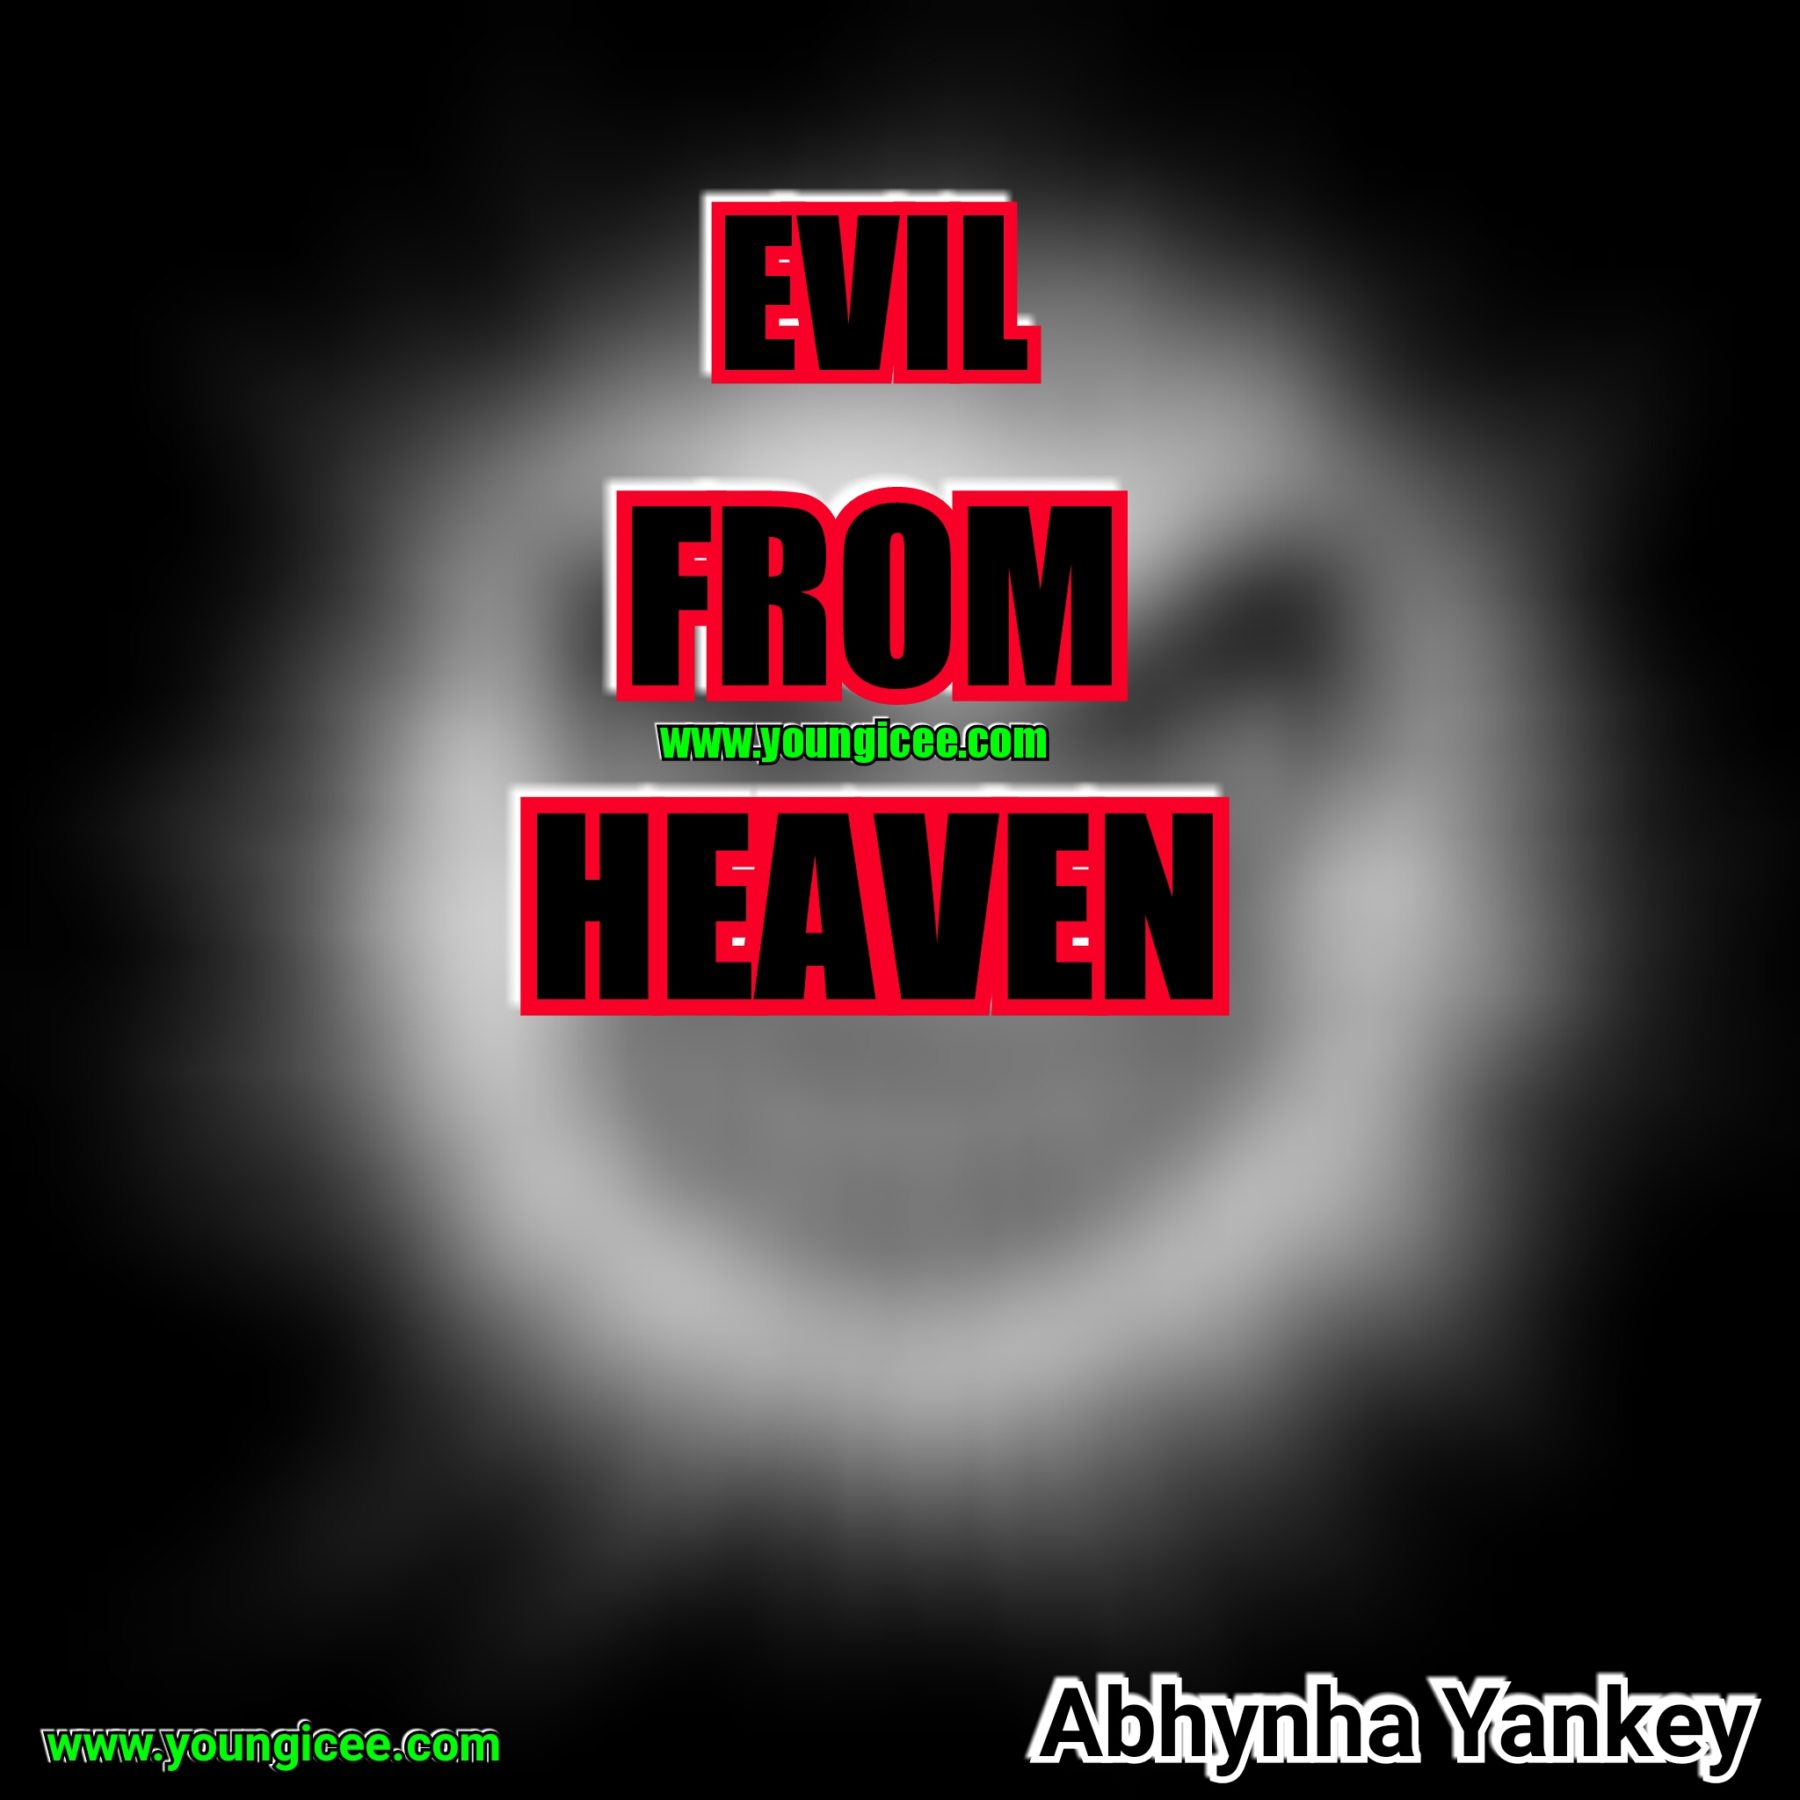 Evil from heaven